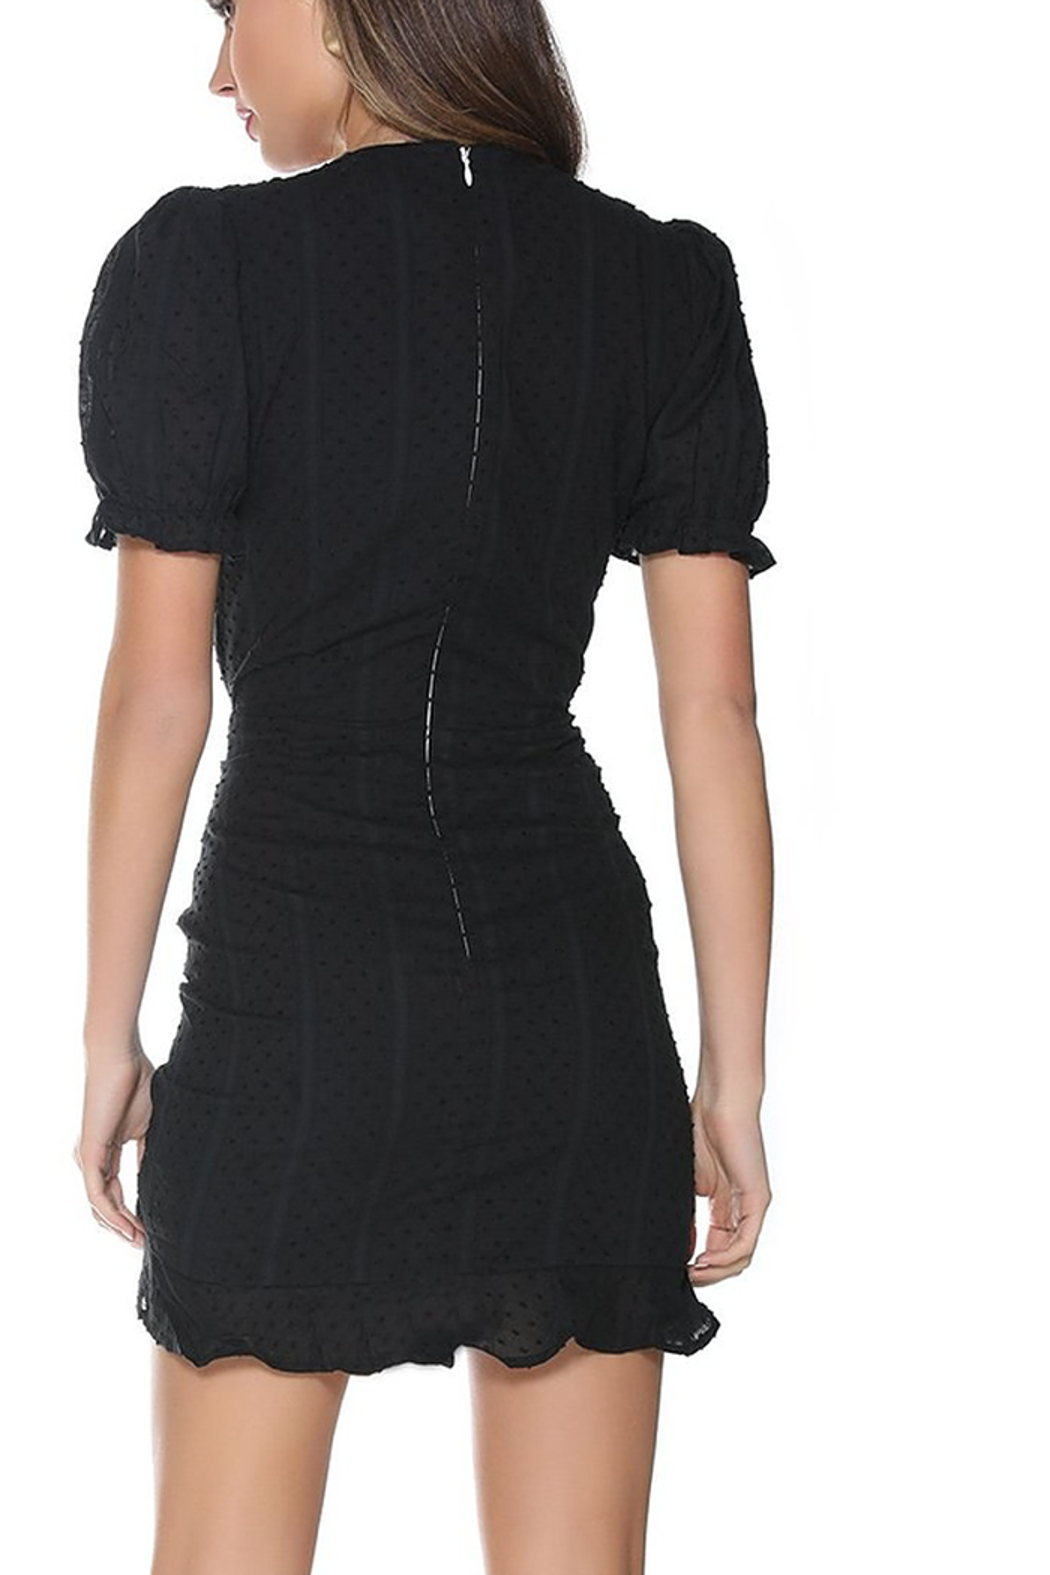 Runaway The Label Ditsy Mini Dress - Side Cropped Image